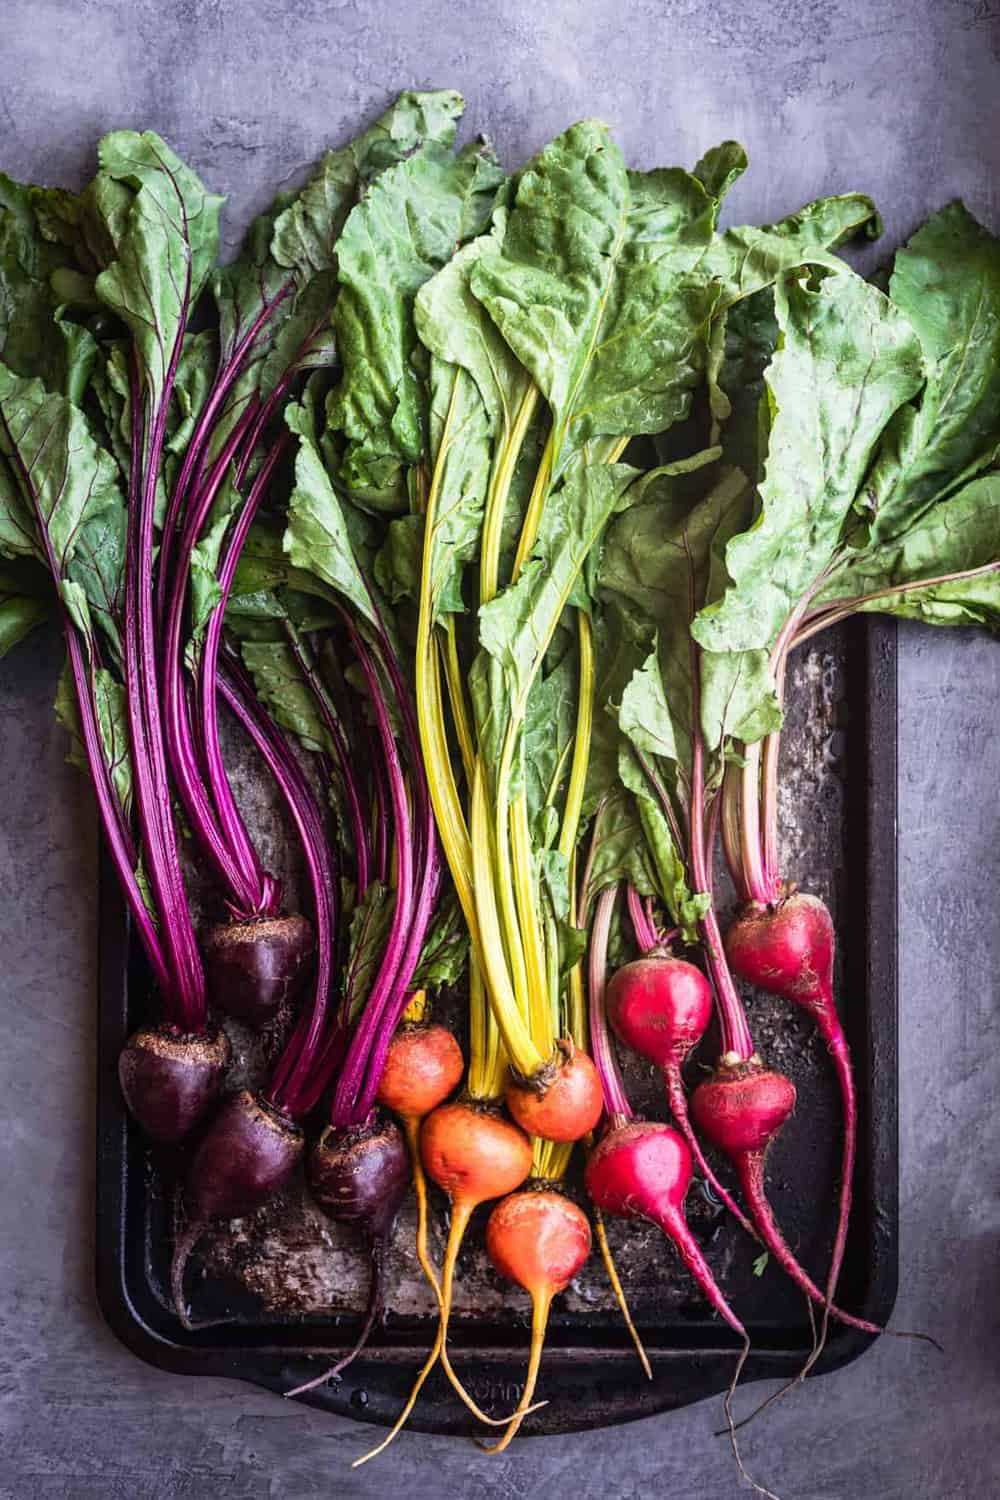 Golden, red and purple beets on a baking sheet with their leafy green tops.